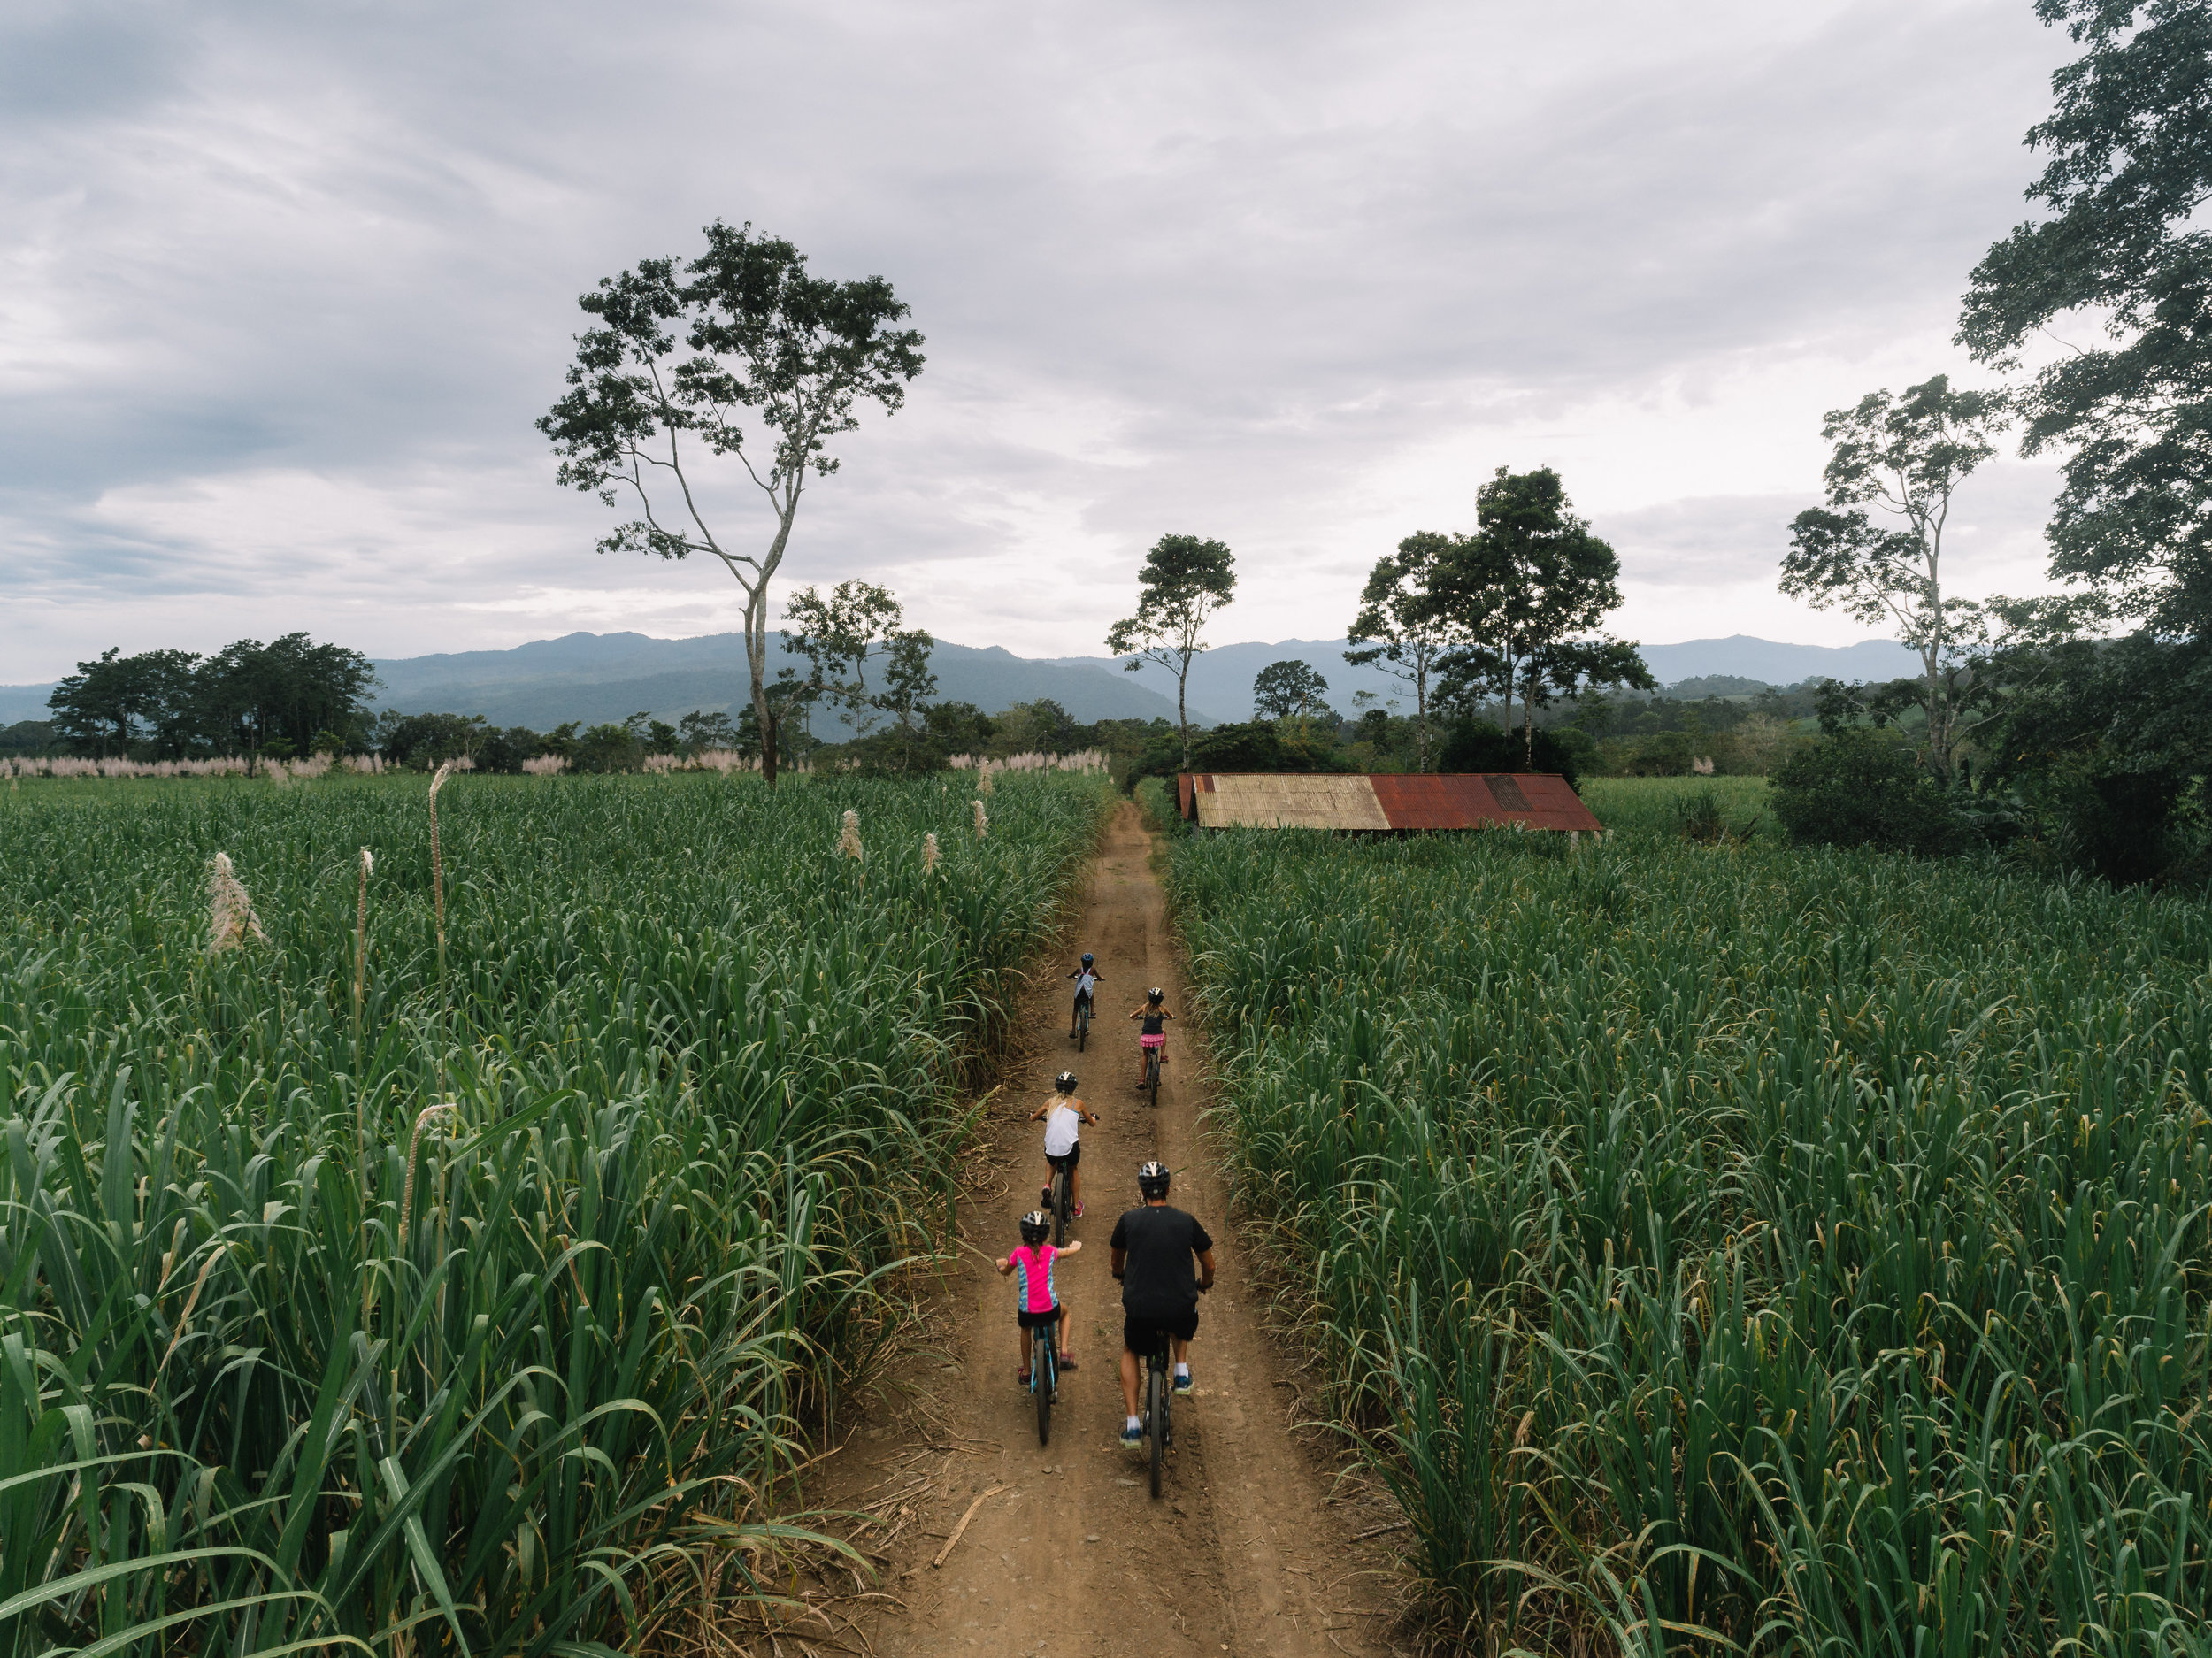 Riding thru Sugar Cane fields Turrialba, Costa Rica. During this 8km ride,  we were fortunate to navigate thru mazes of sugar cane and our way out thankfully!